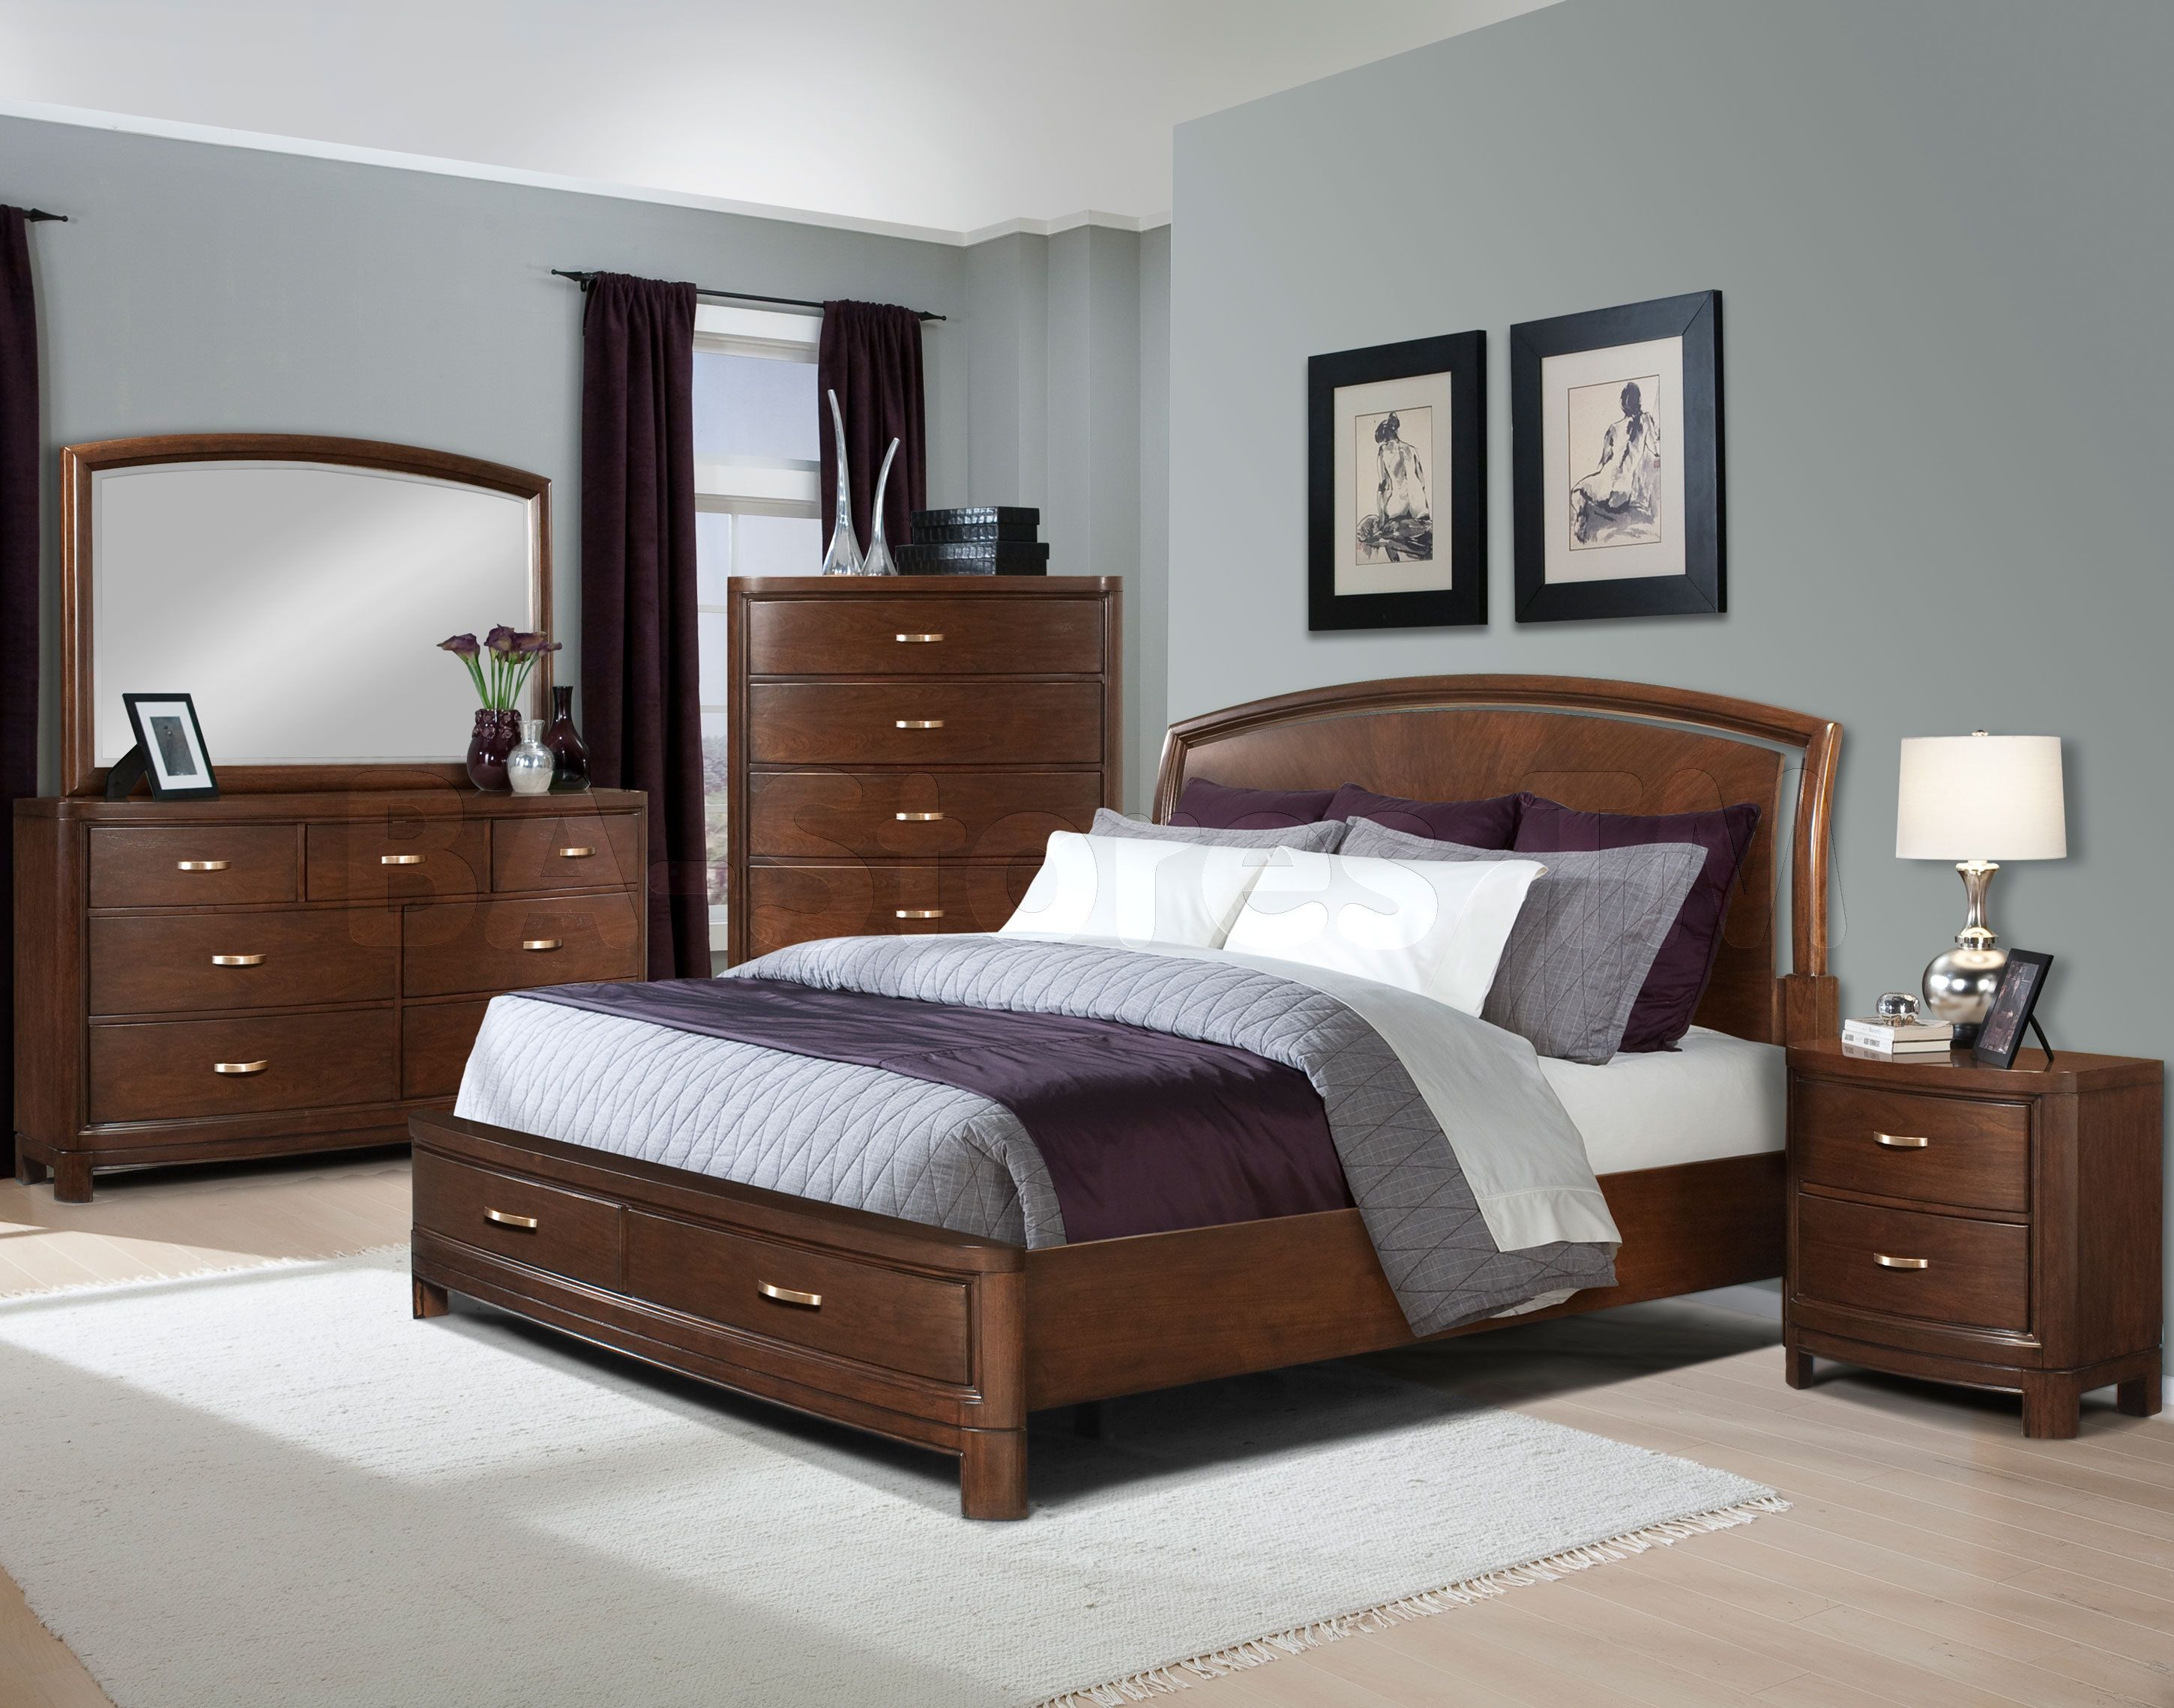 Contemporary Bedroom With Dark Wood Bed Google Search Bed 5 Pinterest